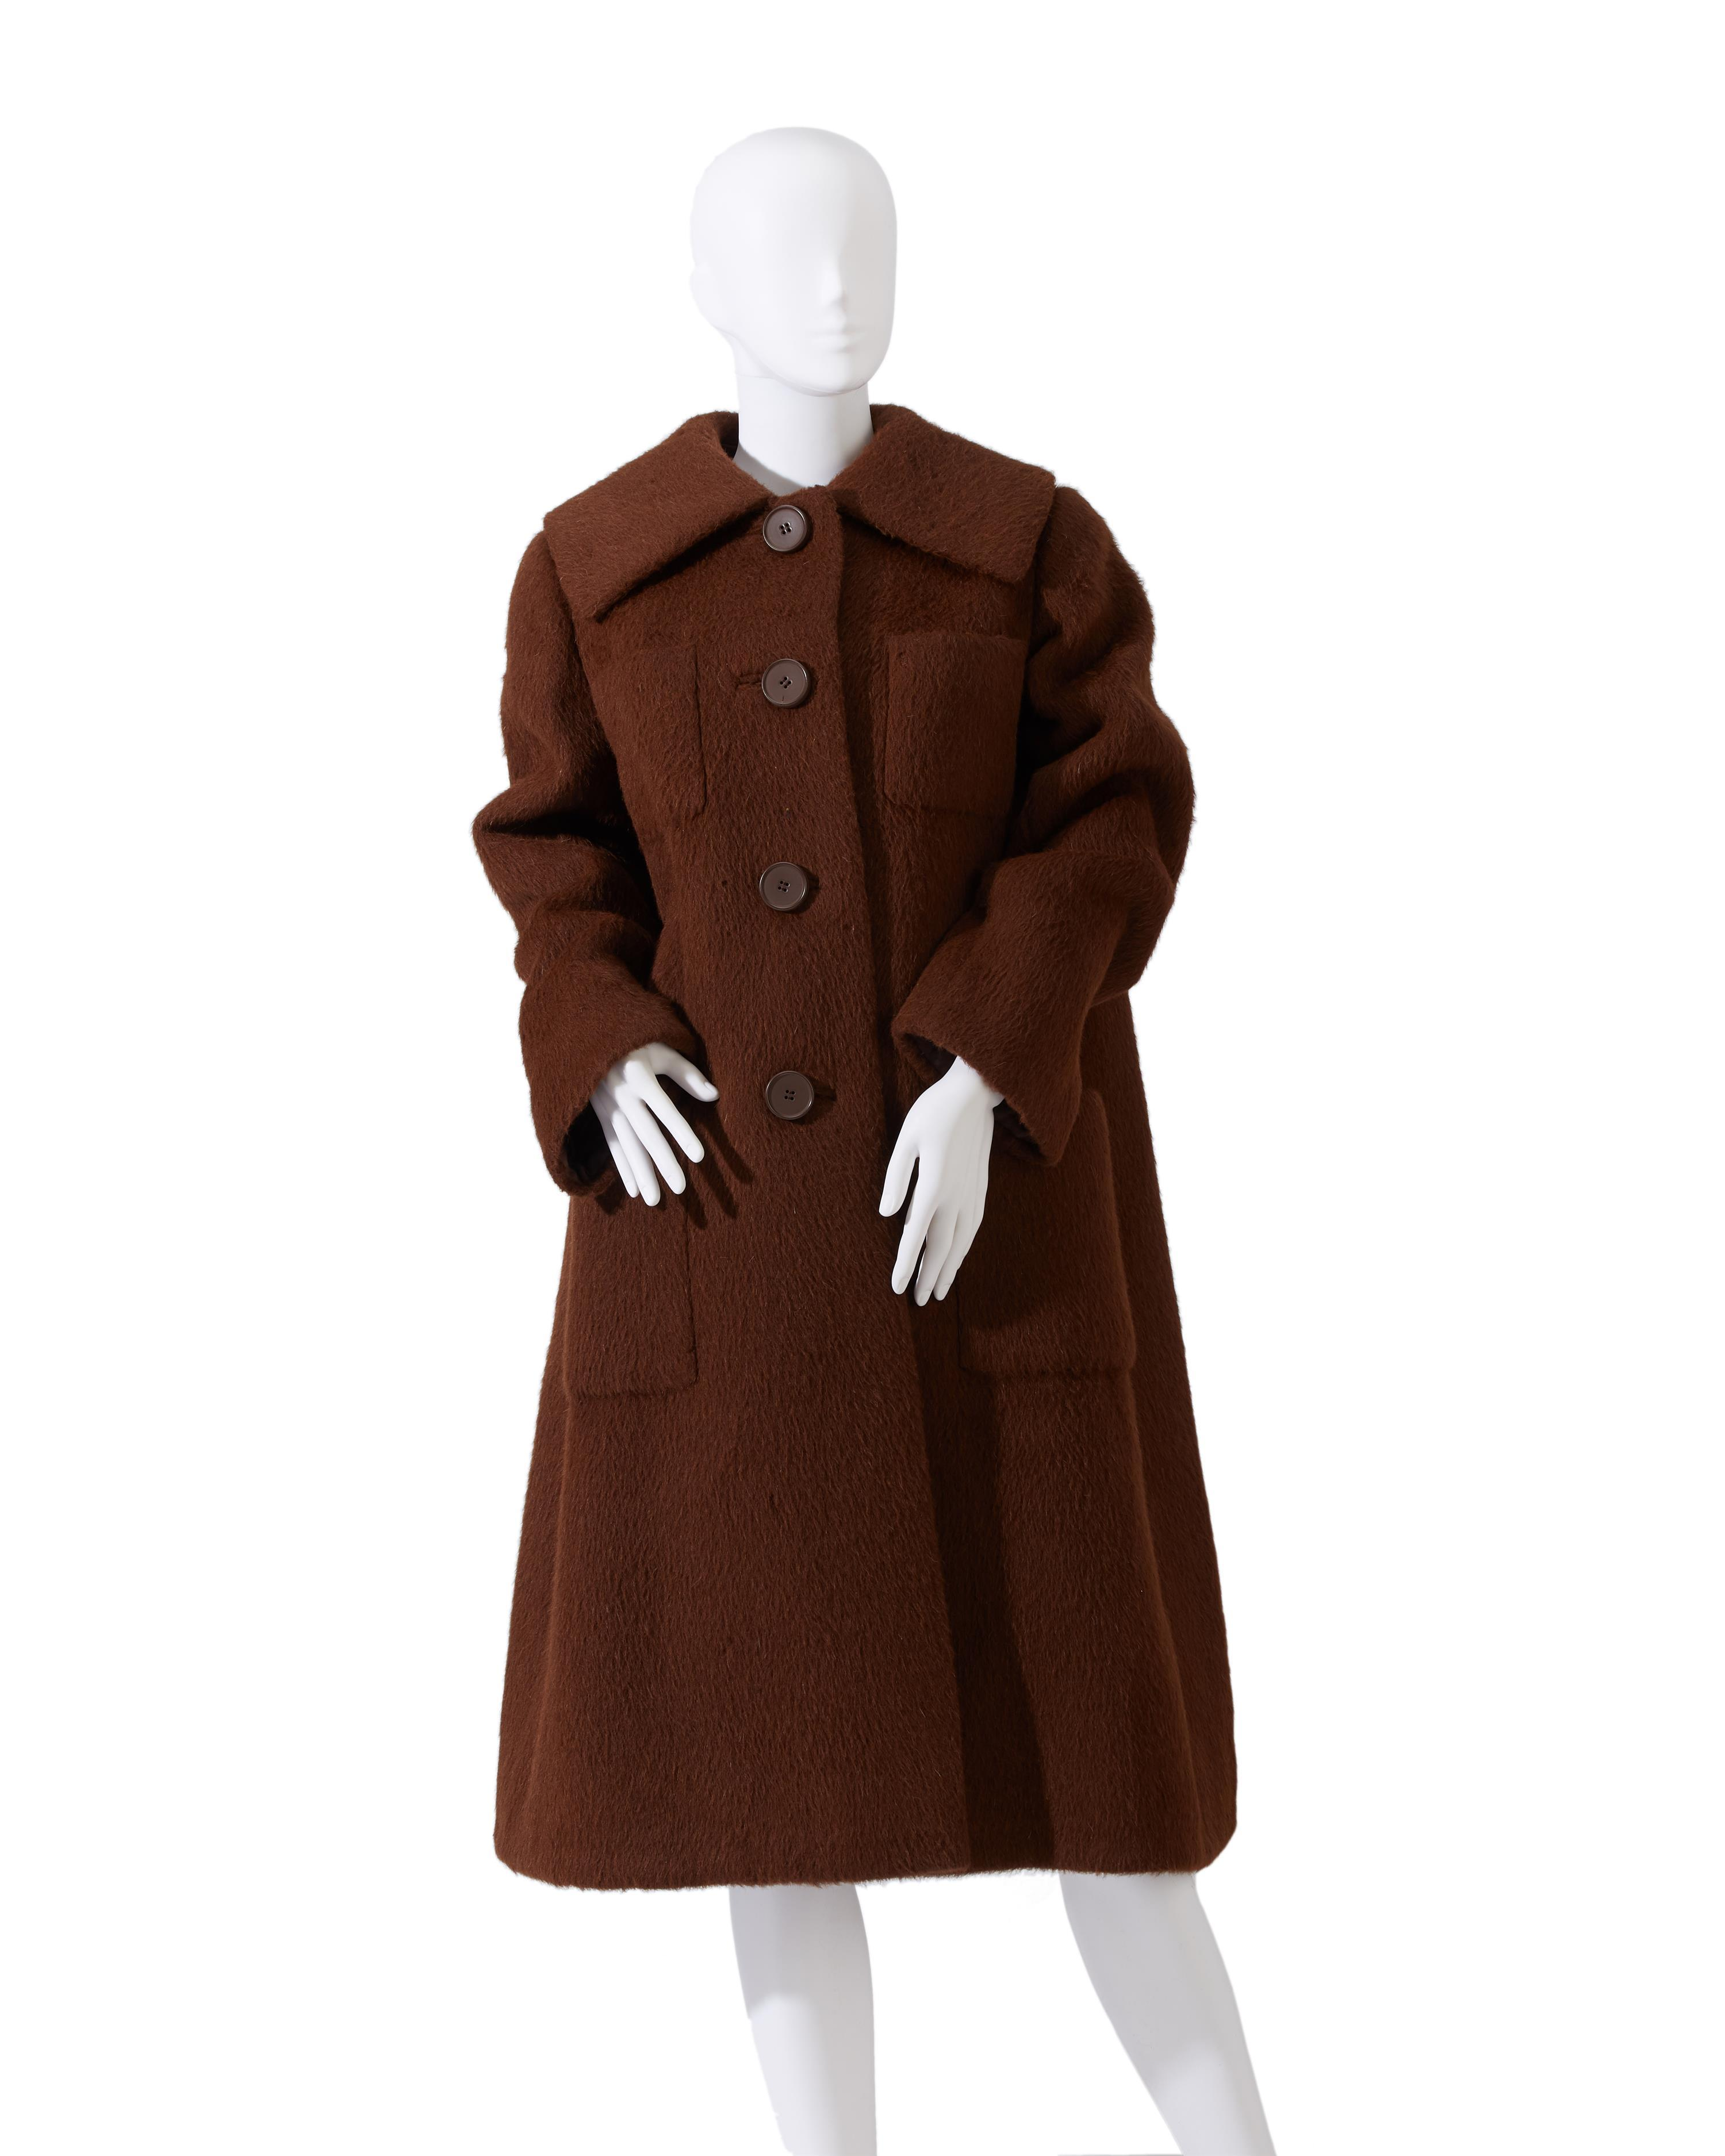 A Norman Norell wool coat